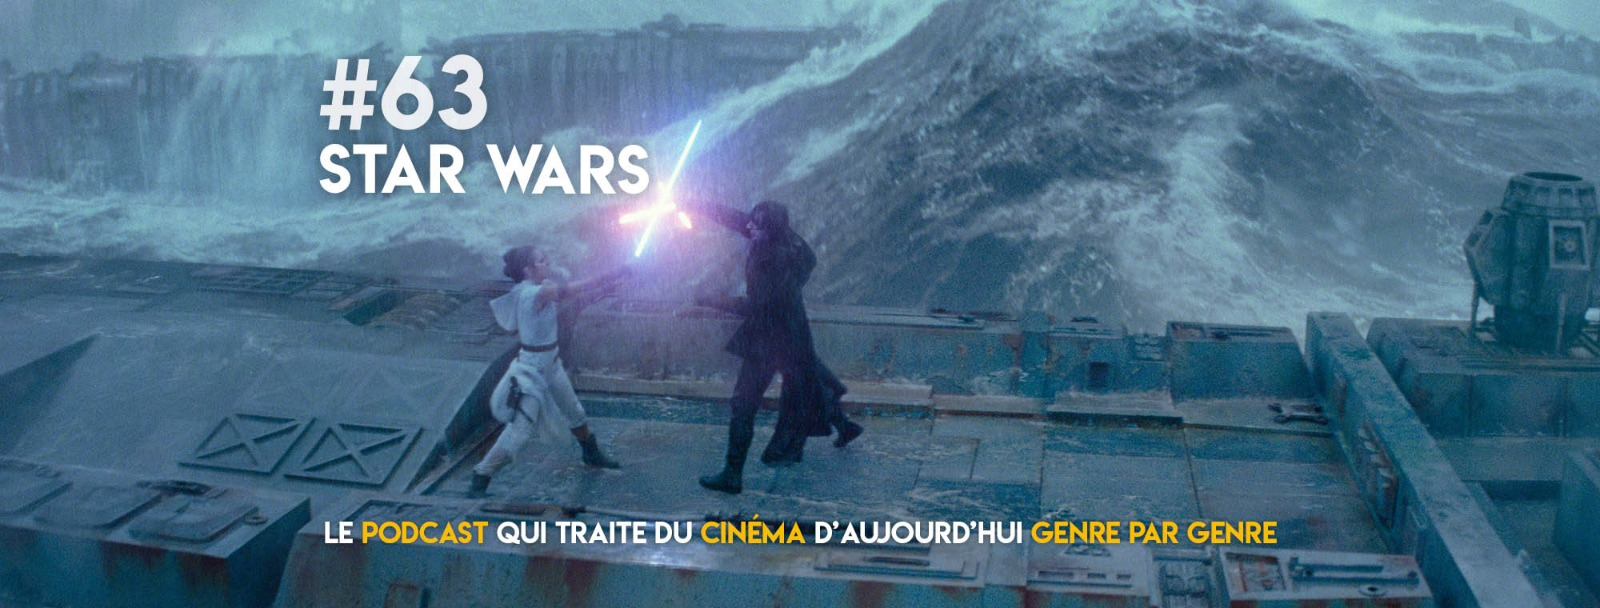 Parlons Péloches - #63 Le film Star Wars